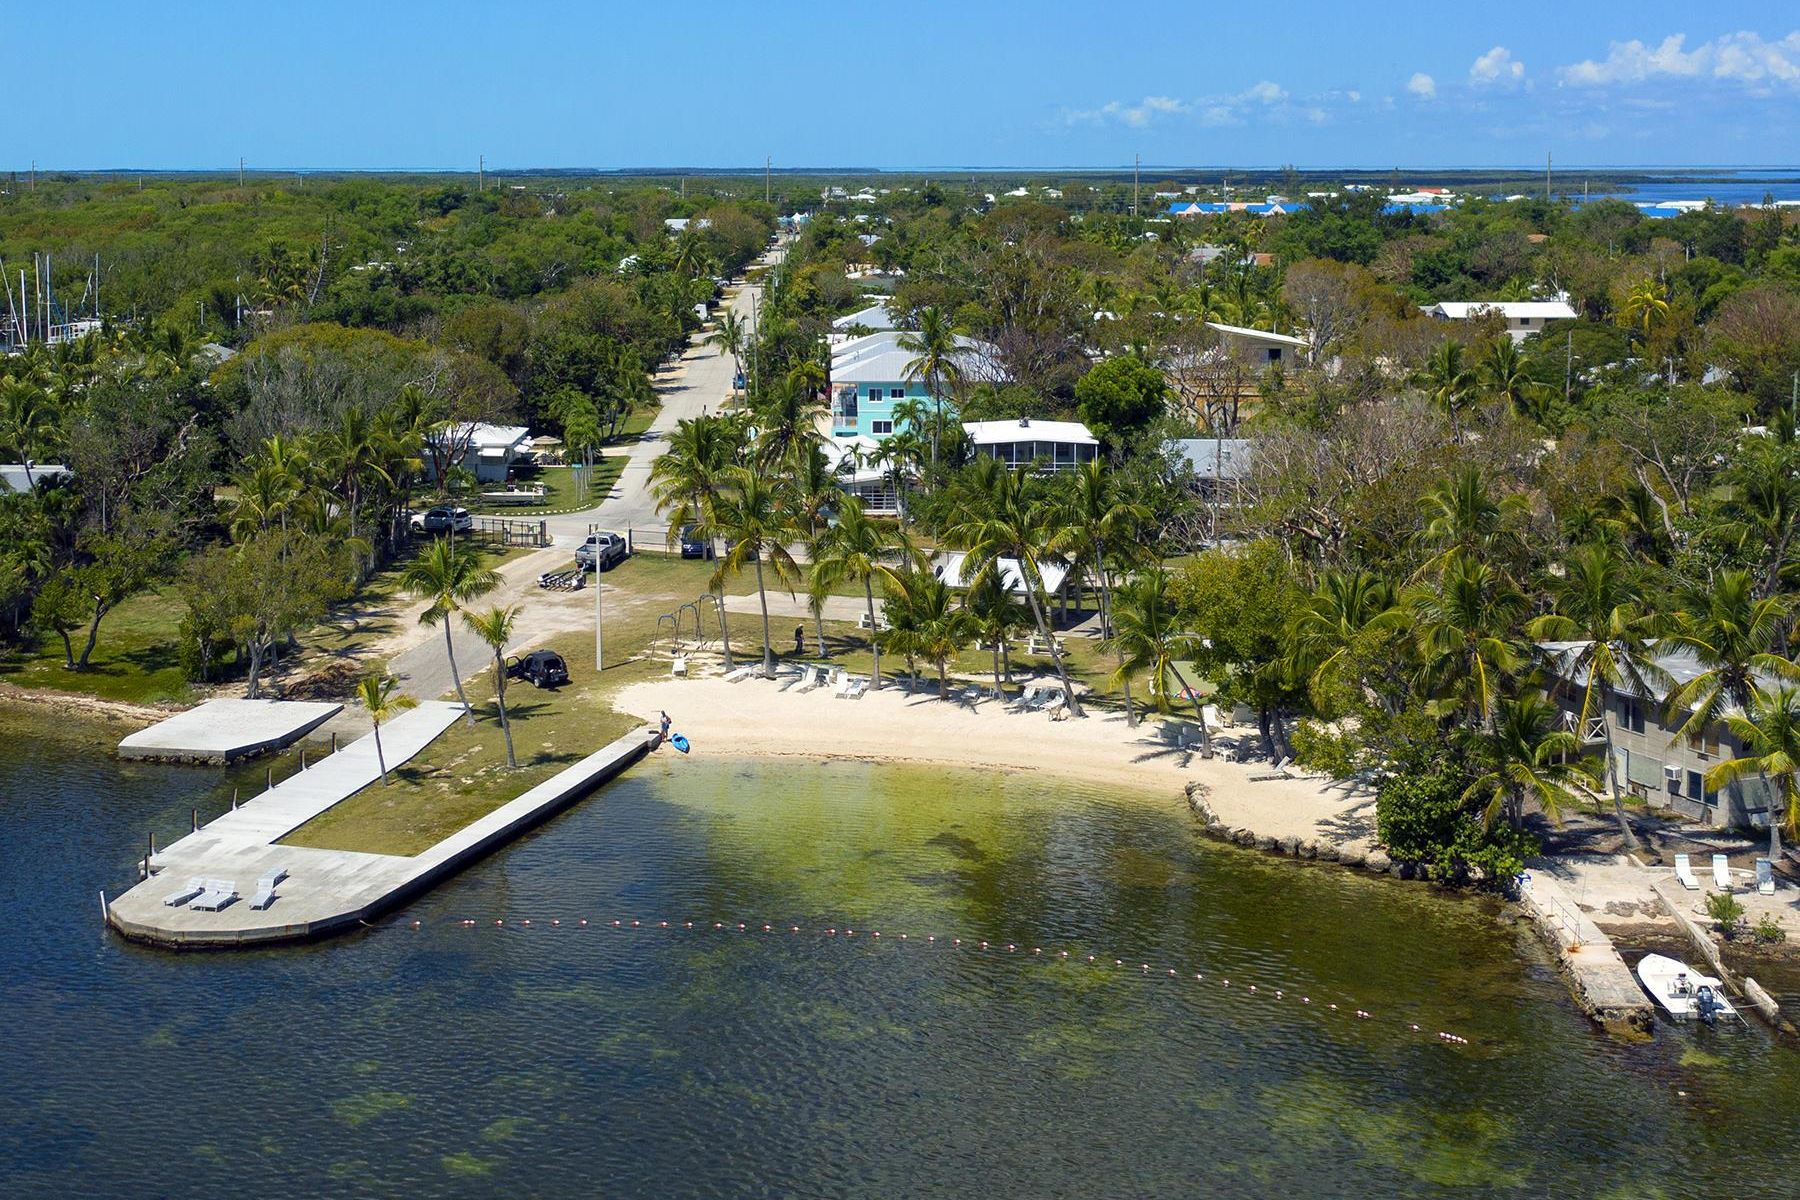 Property for Sale at BK2 LT2 Bass Avenue, Key Largo, FL BK2 LT2 Bass Avenue Key Largo, Florida 33037 United States